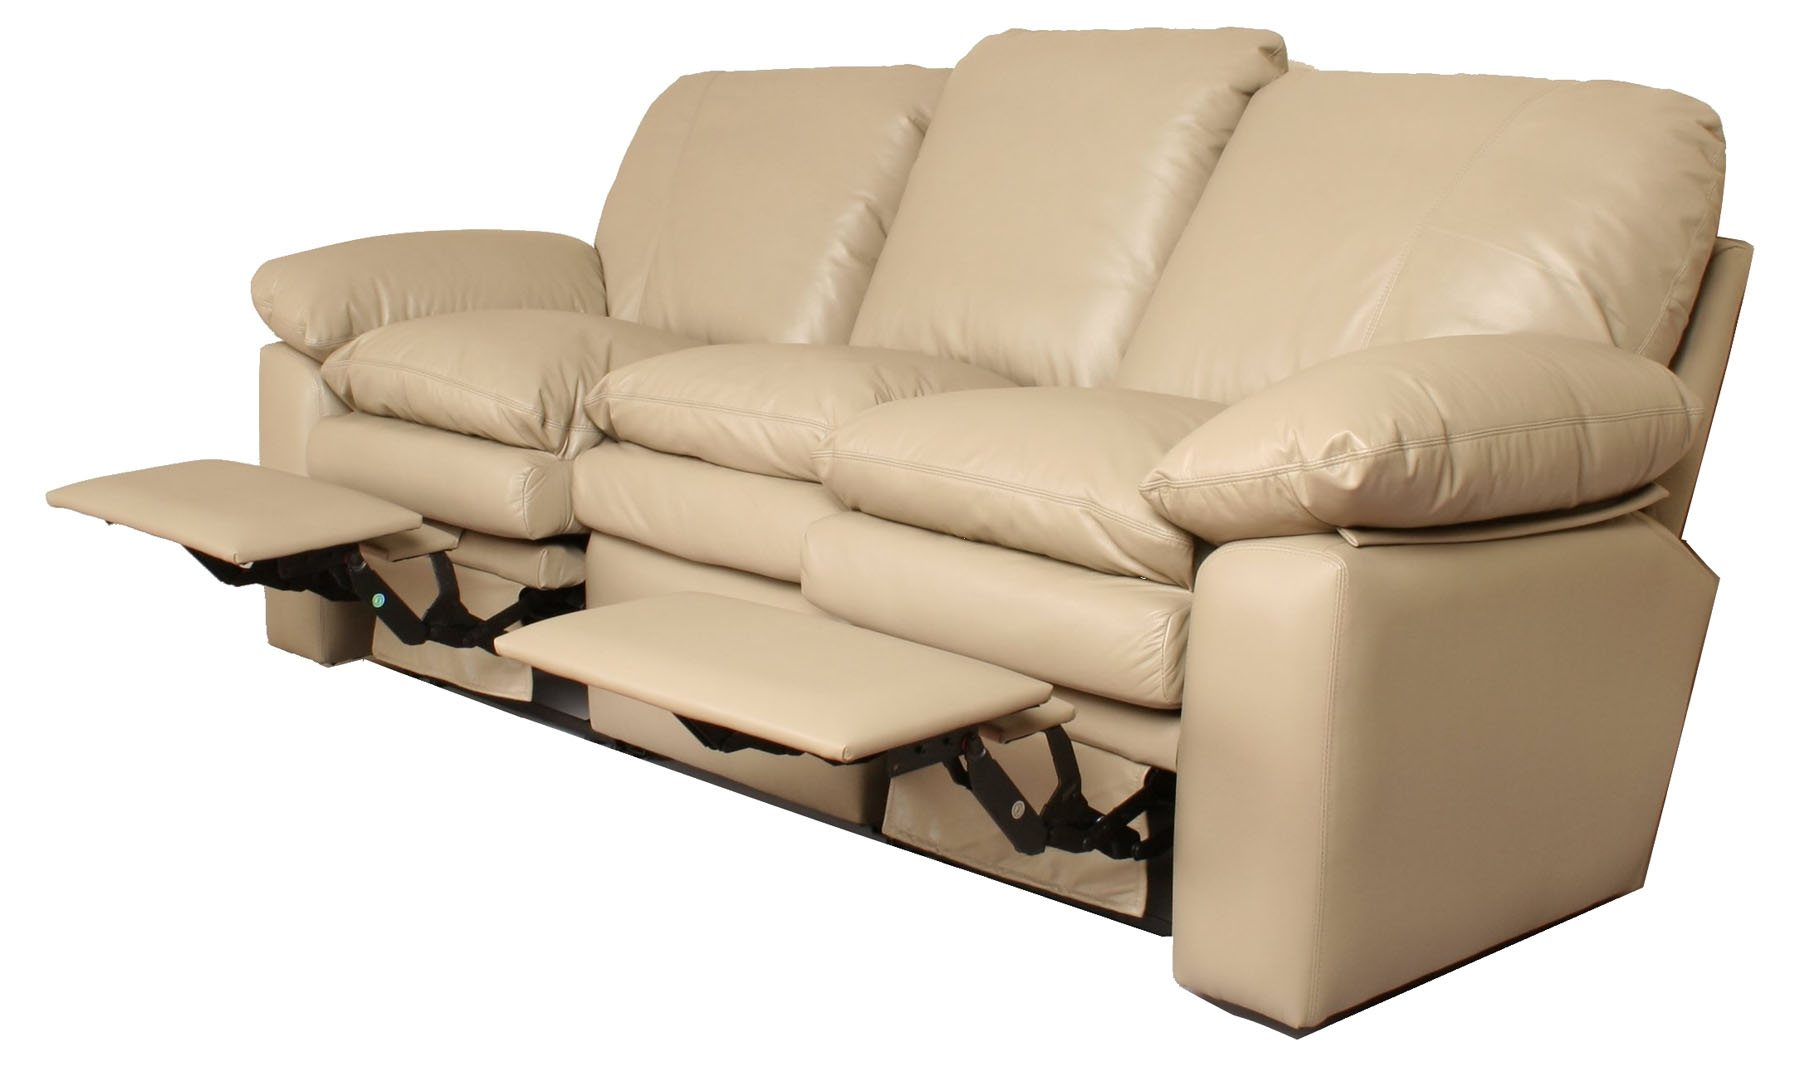 Carrera reclining leather sofa Leather loveseat recliners